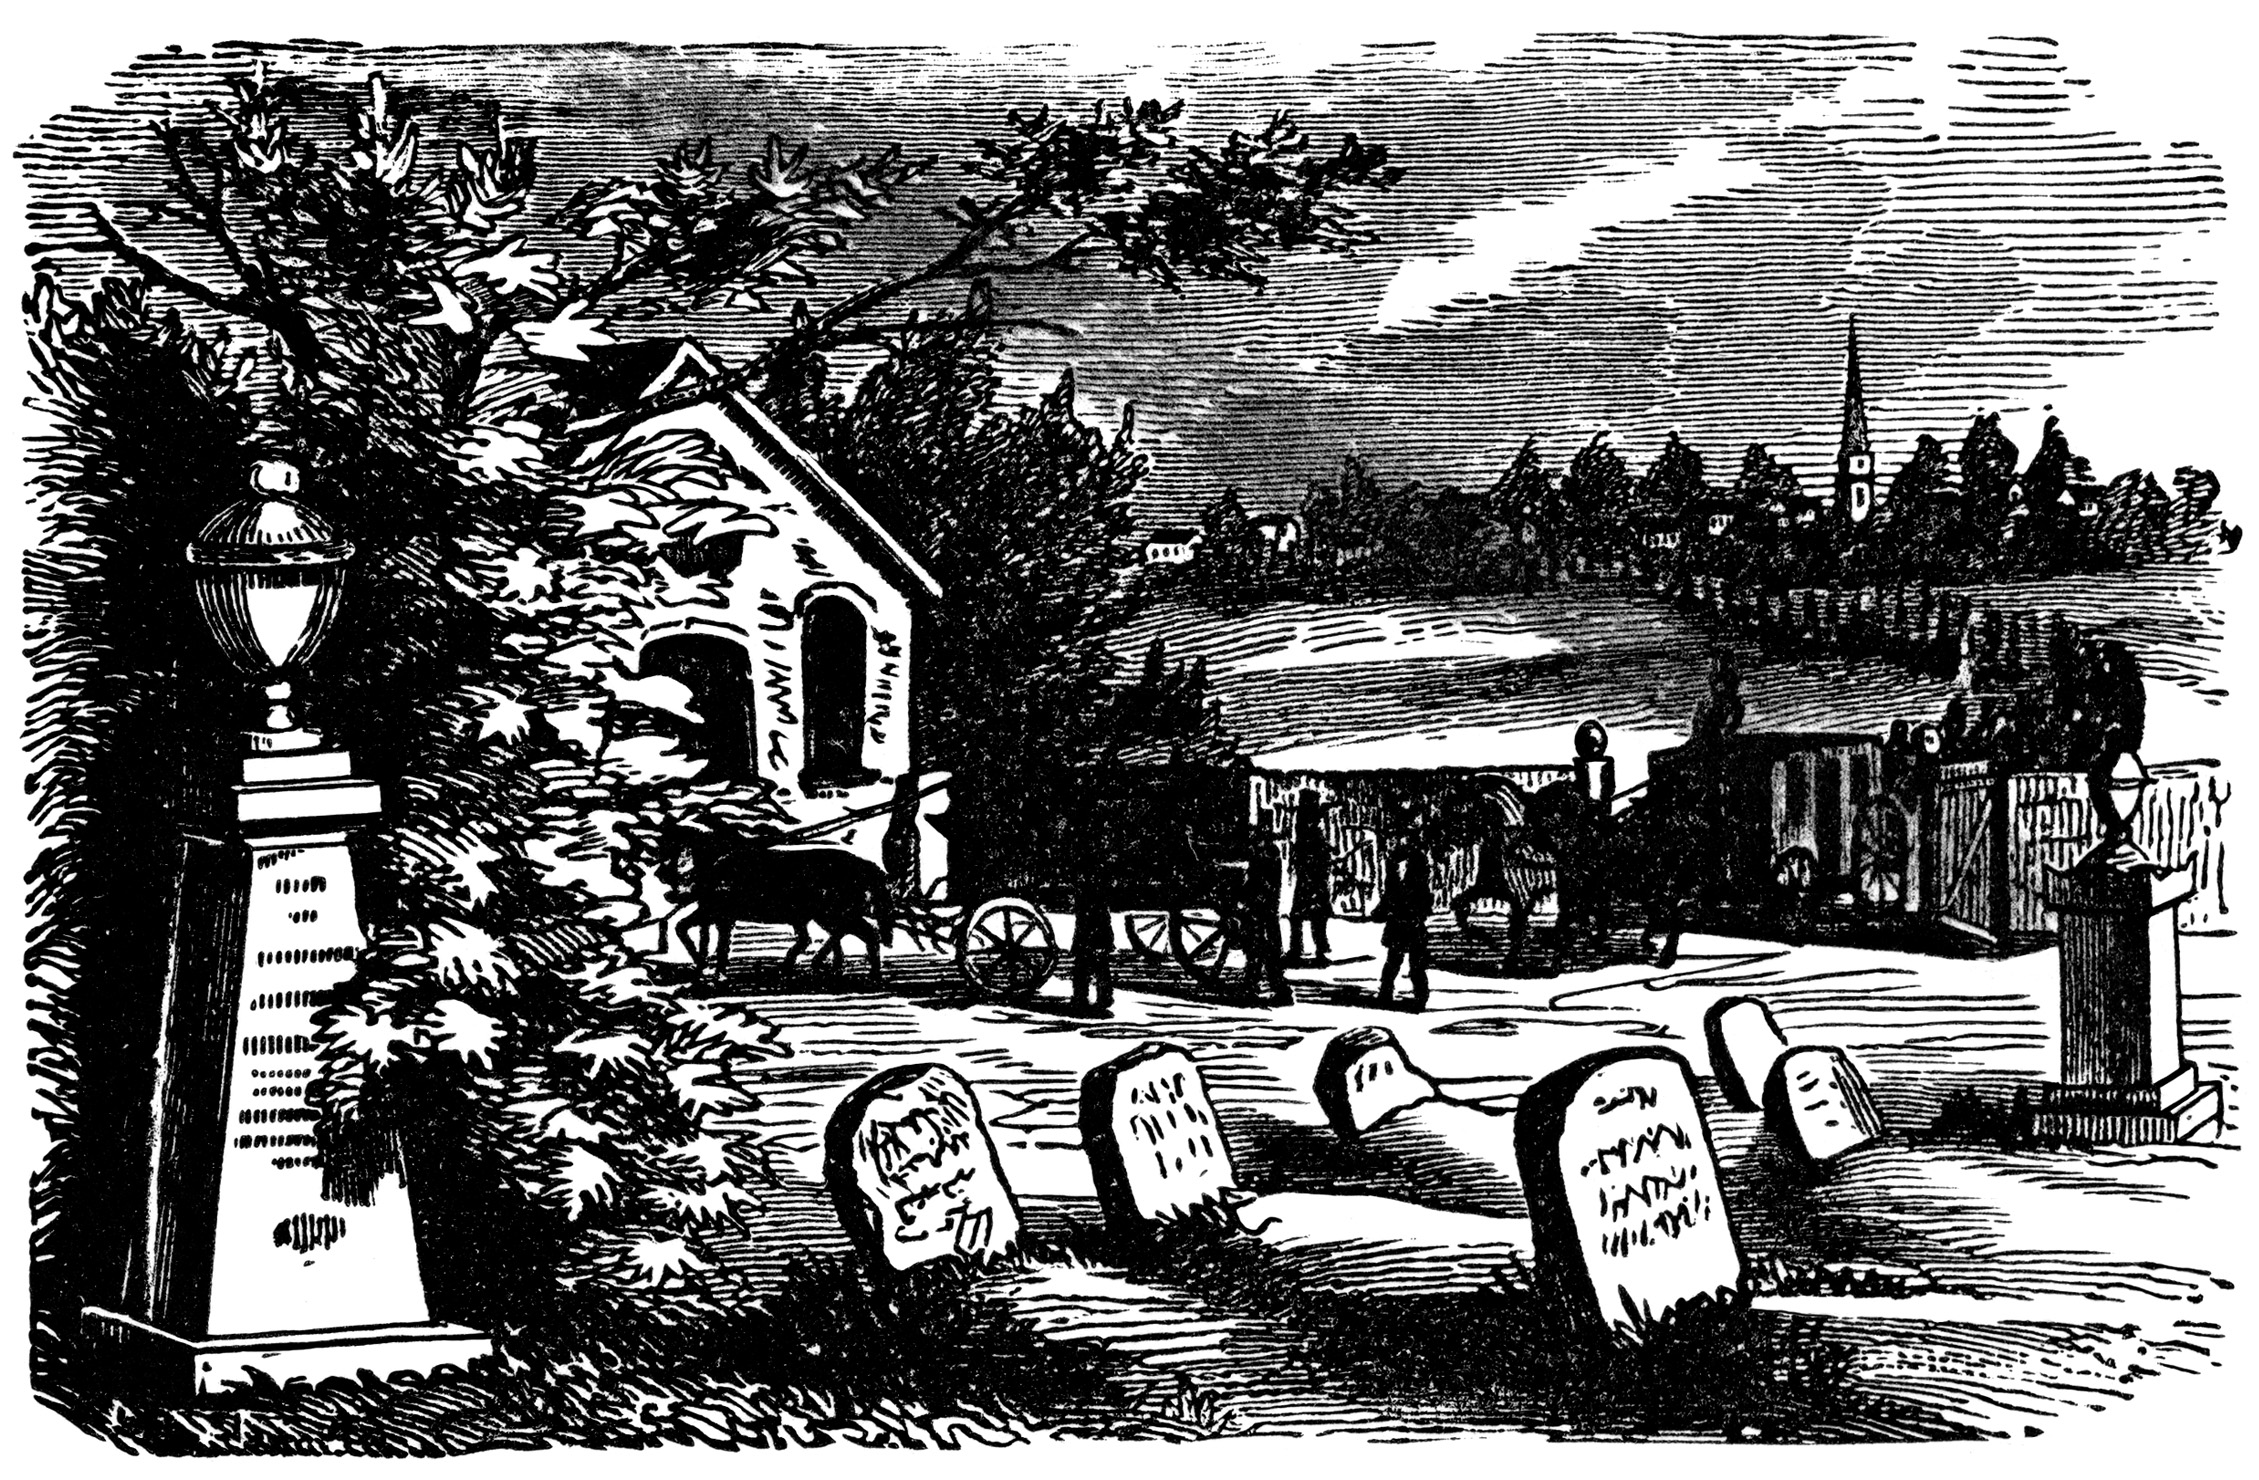 vintage Halloween clip art, black and white clipart, tombstone graphics, Victorian graveyard scene, headstone grave illustration